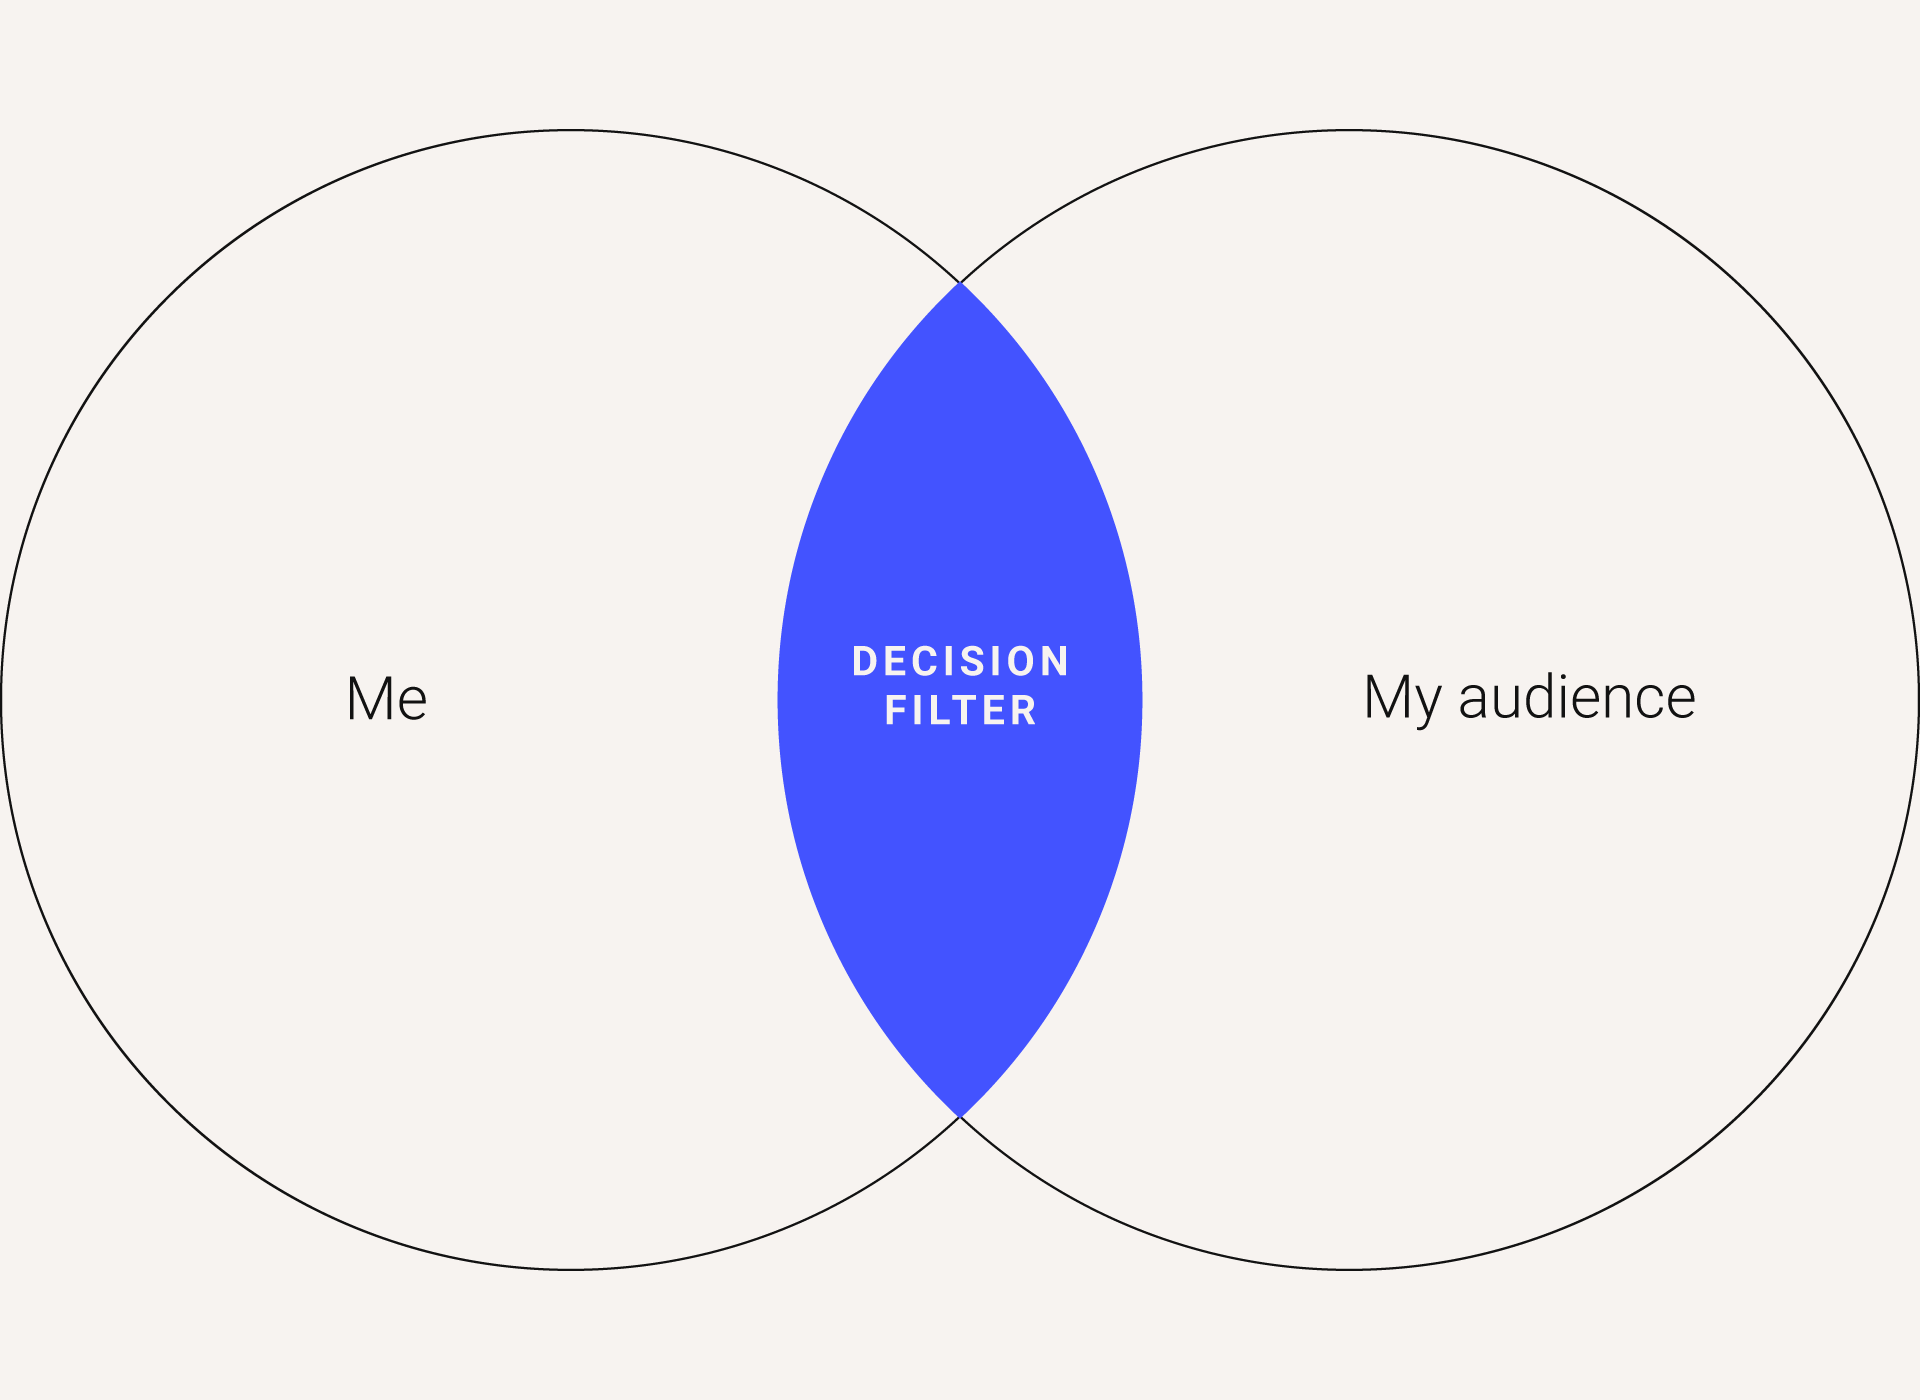 Venn diagram: Me on the left, my audience on the right, decision filter in the middle.